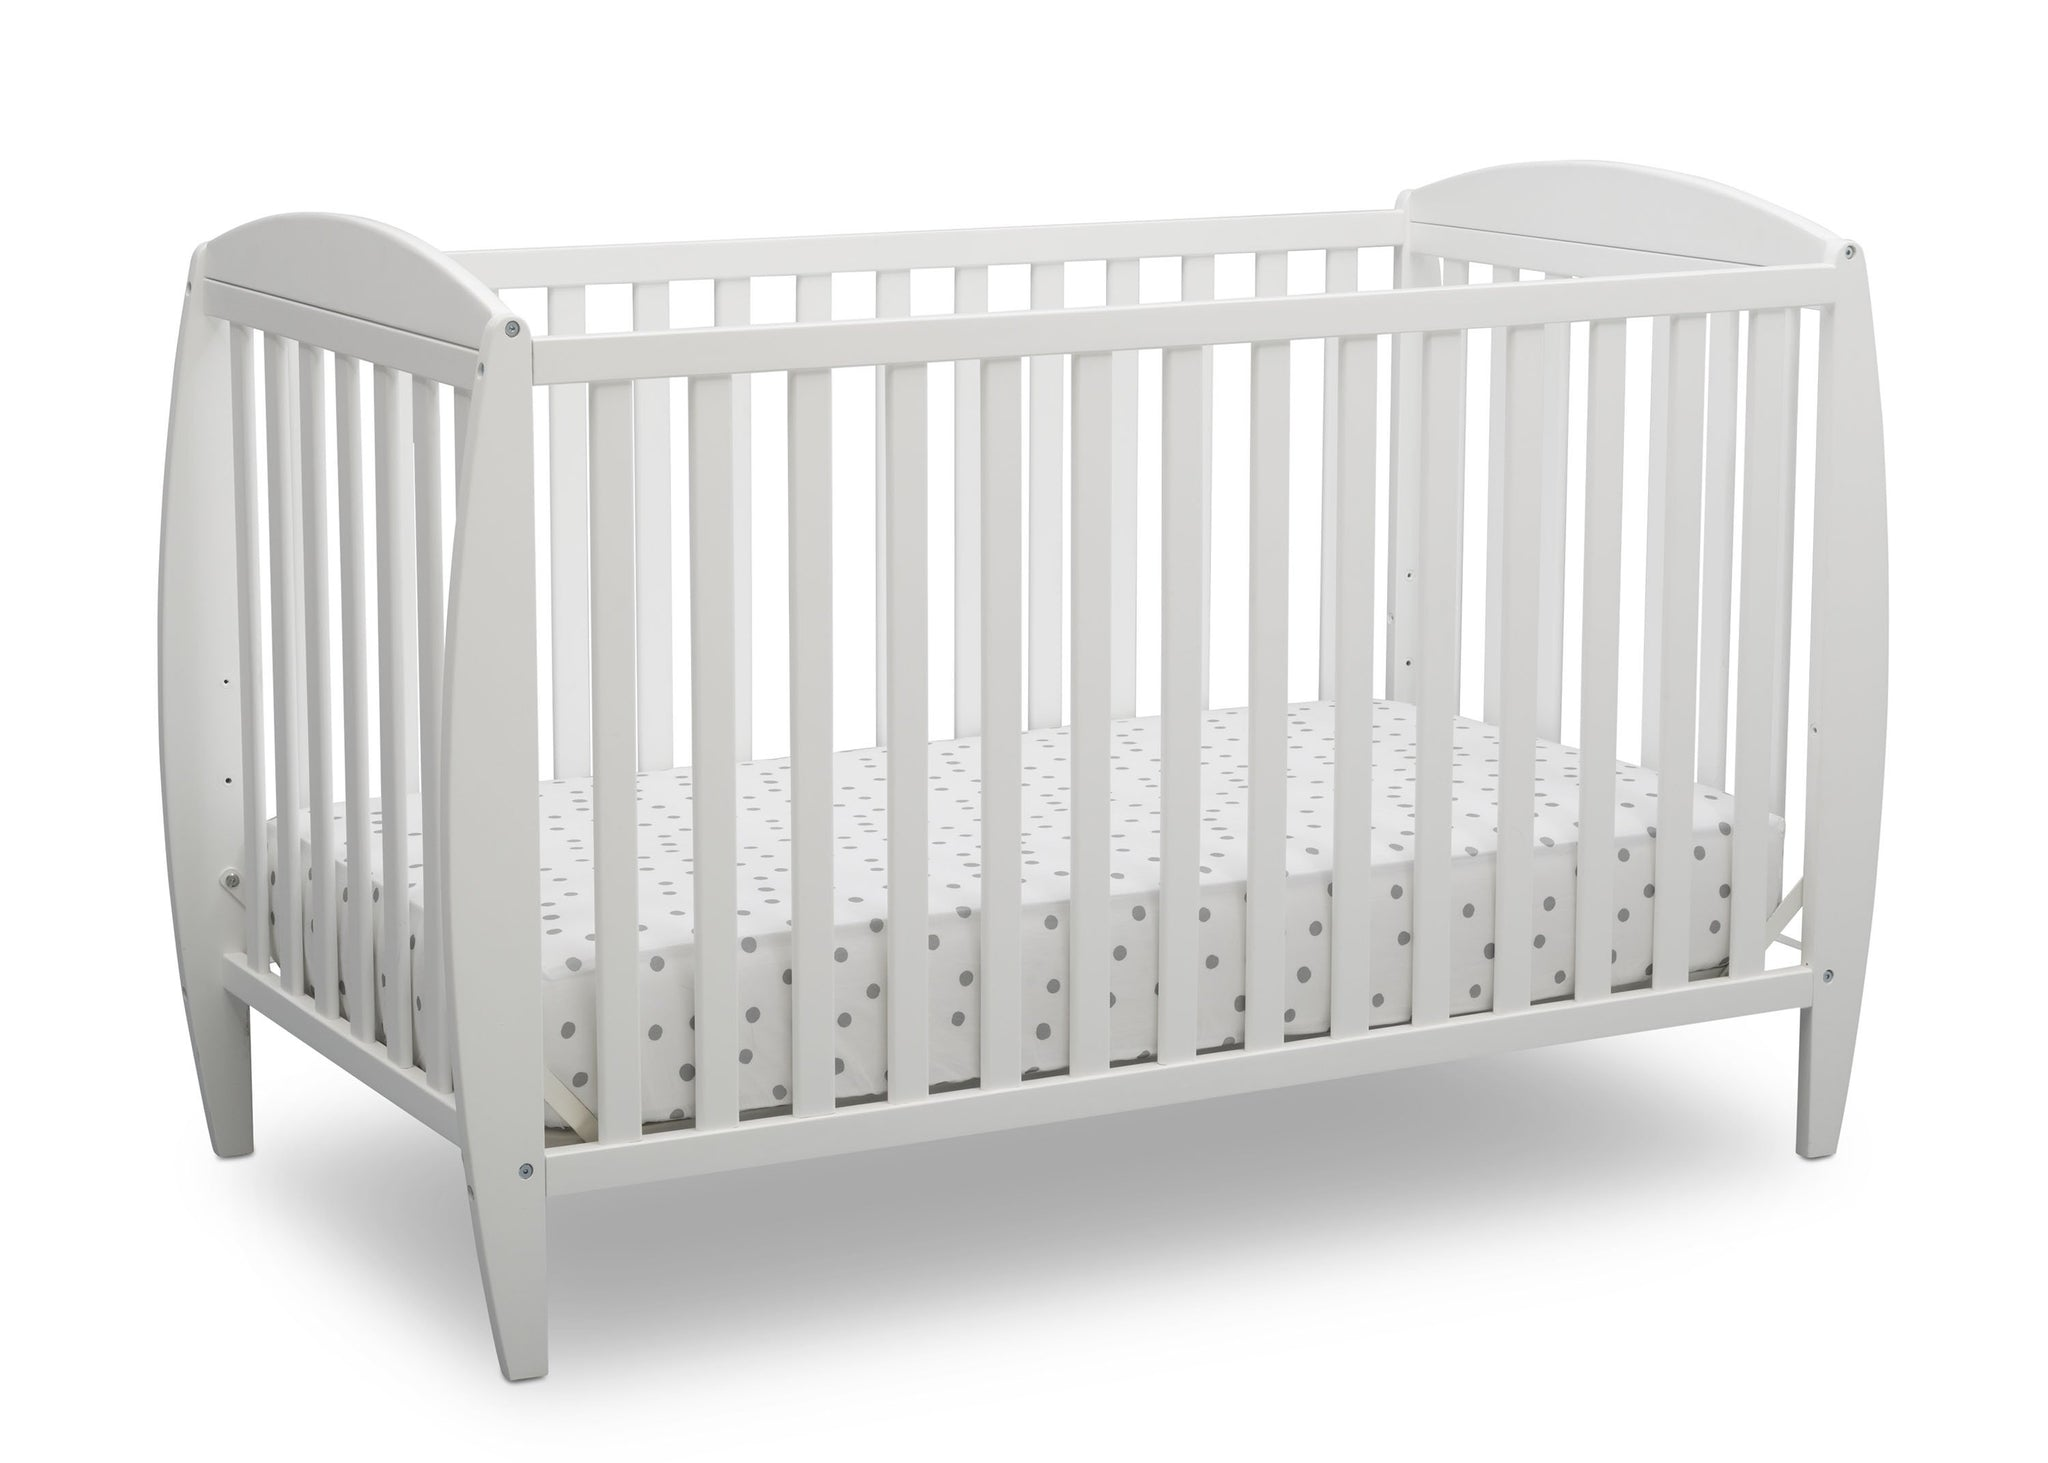 Delta Children Bianca White (130) Taylor 4-in-1 Convertible Crib (W10040), Silo Crib, b2b